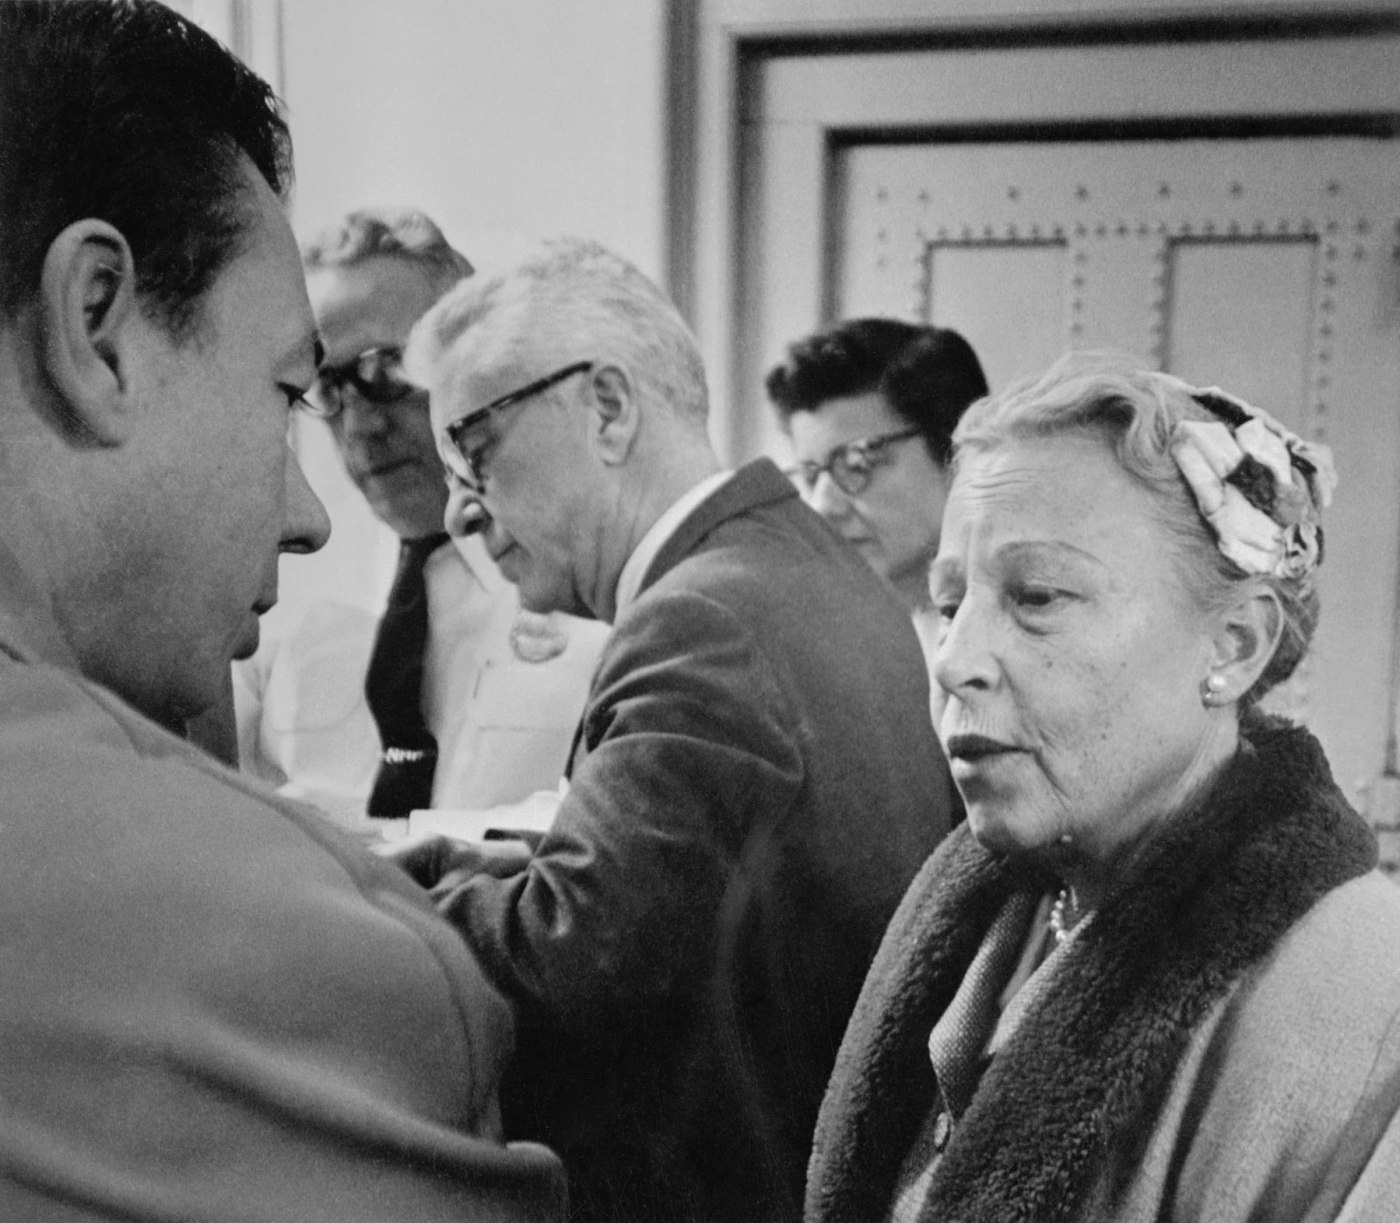 Estelle Griswold and C. Lee Buxton, center, in police headquarters on November 10, 1961.